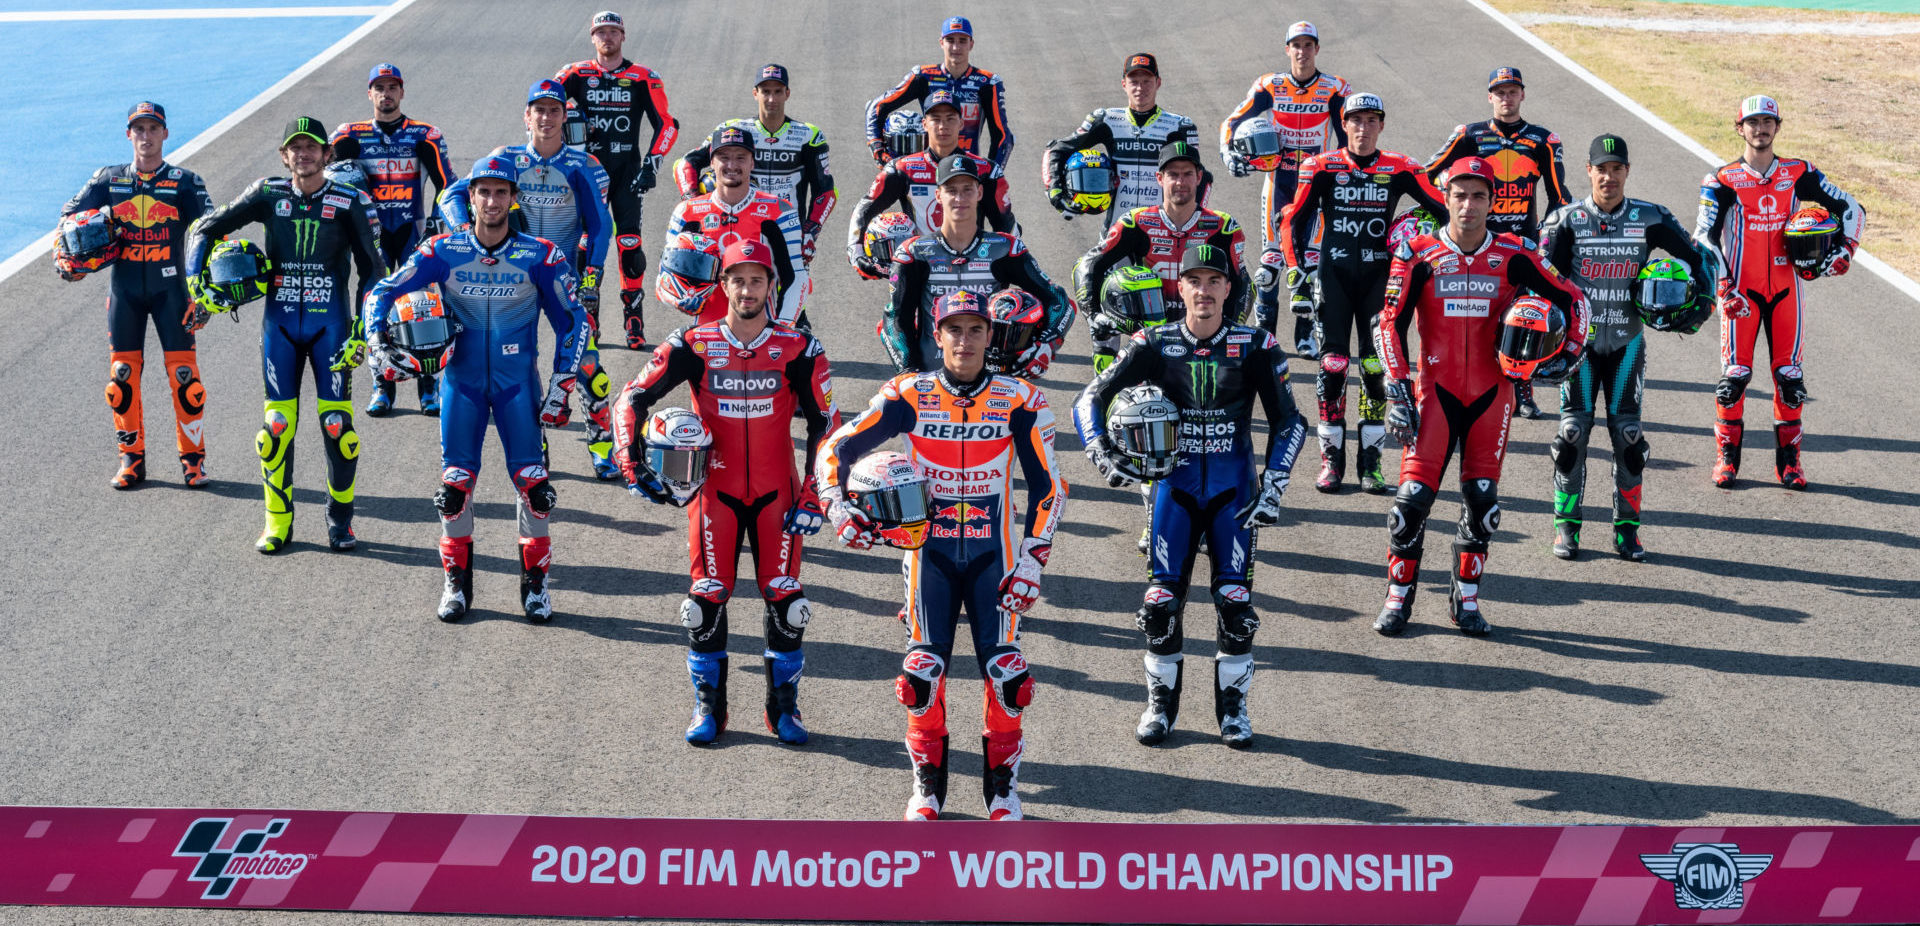 The 2020 FIM MotoGP World Championship field. Photo courtesy Dorna.